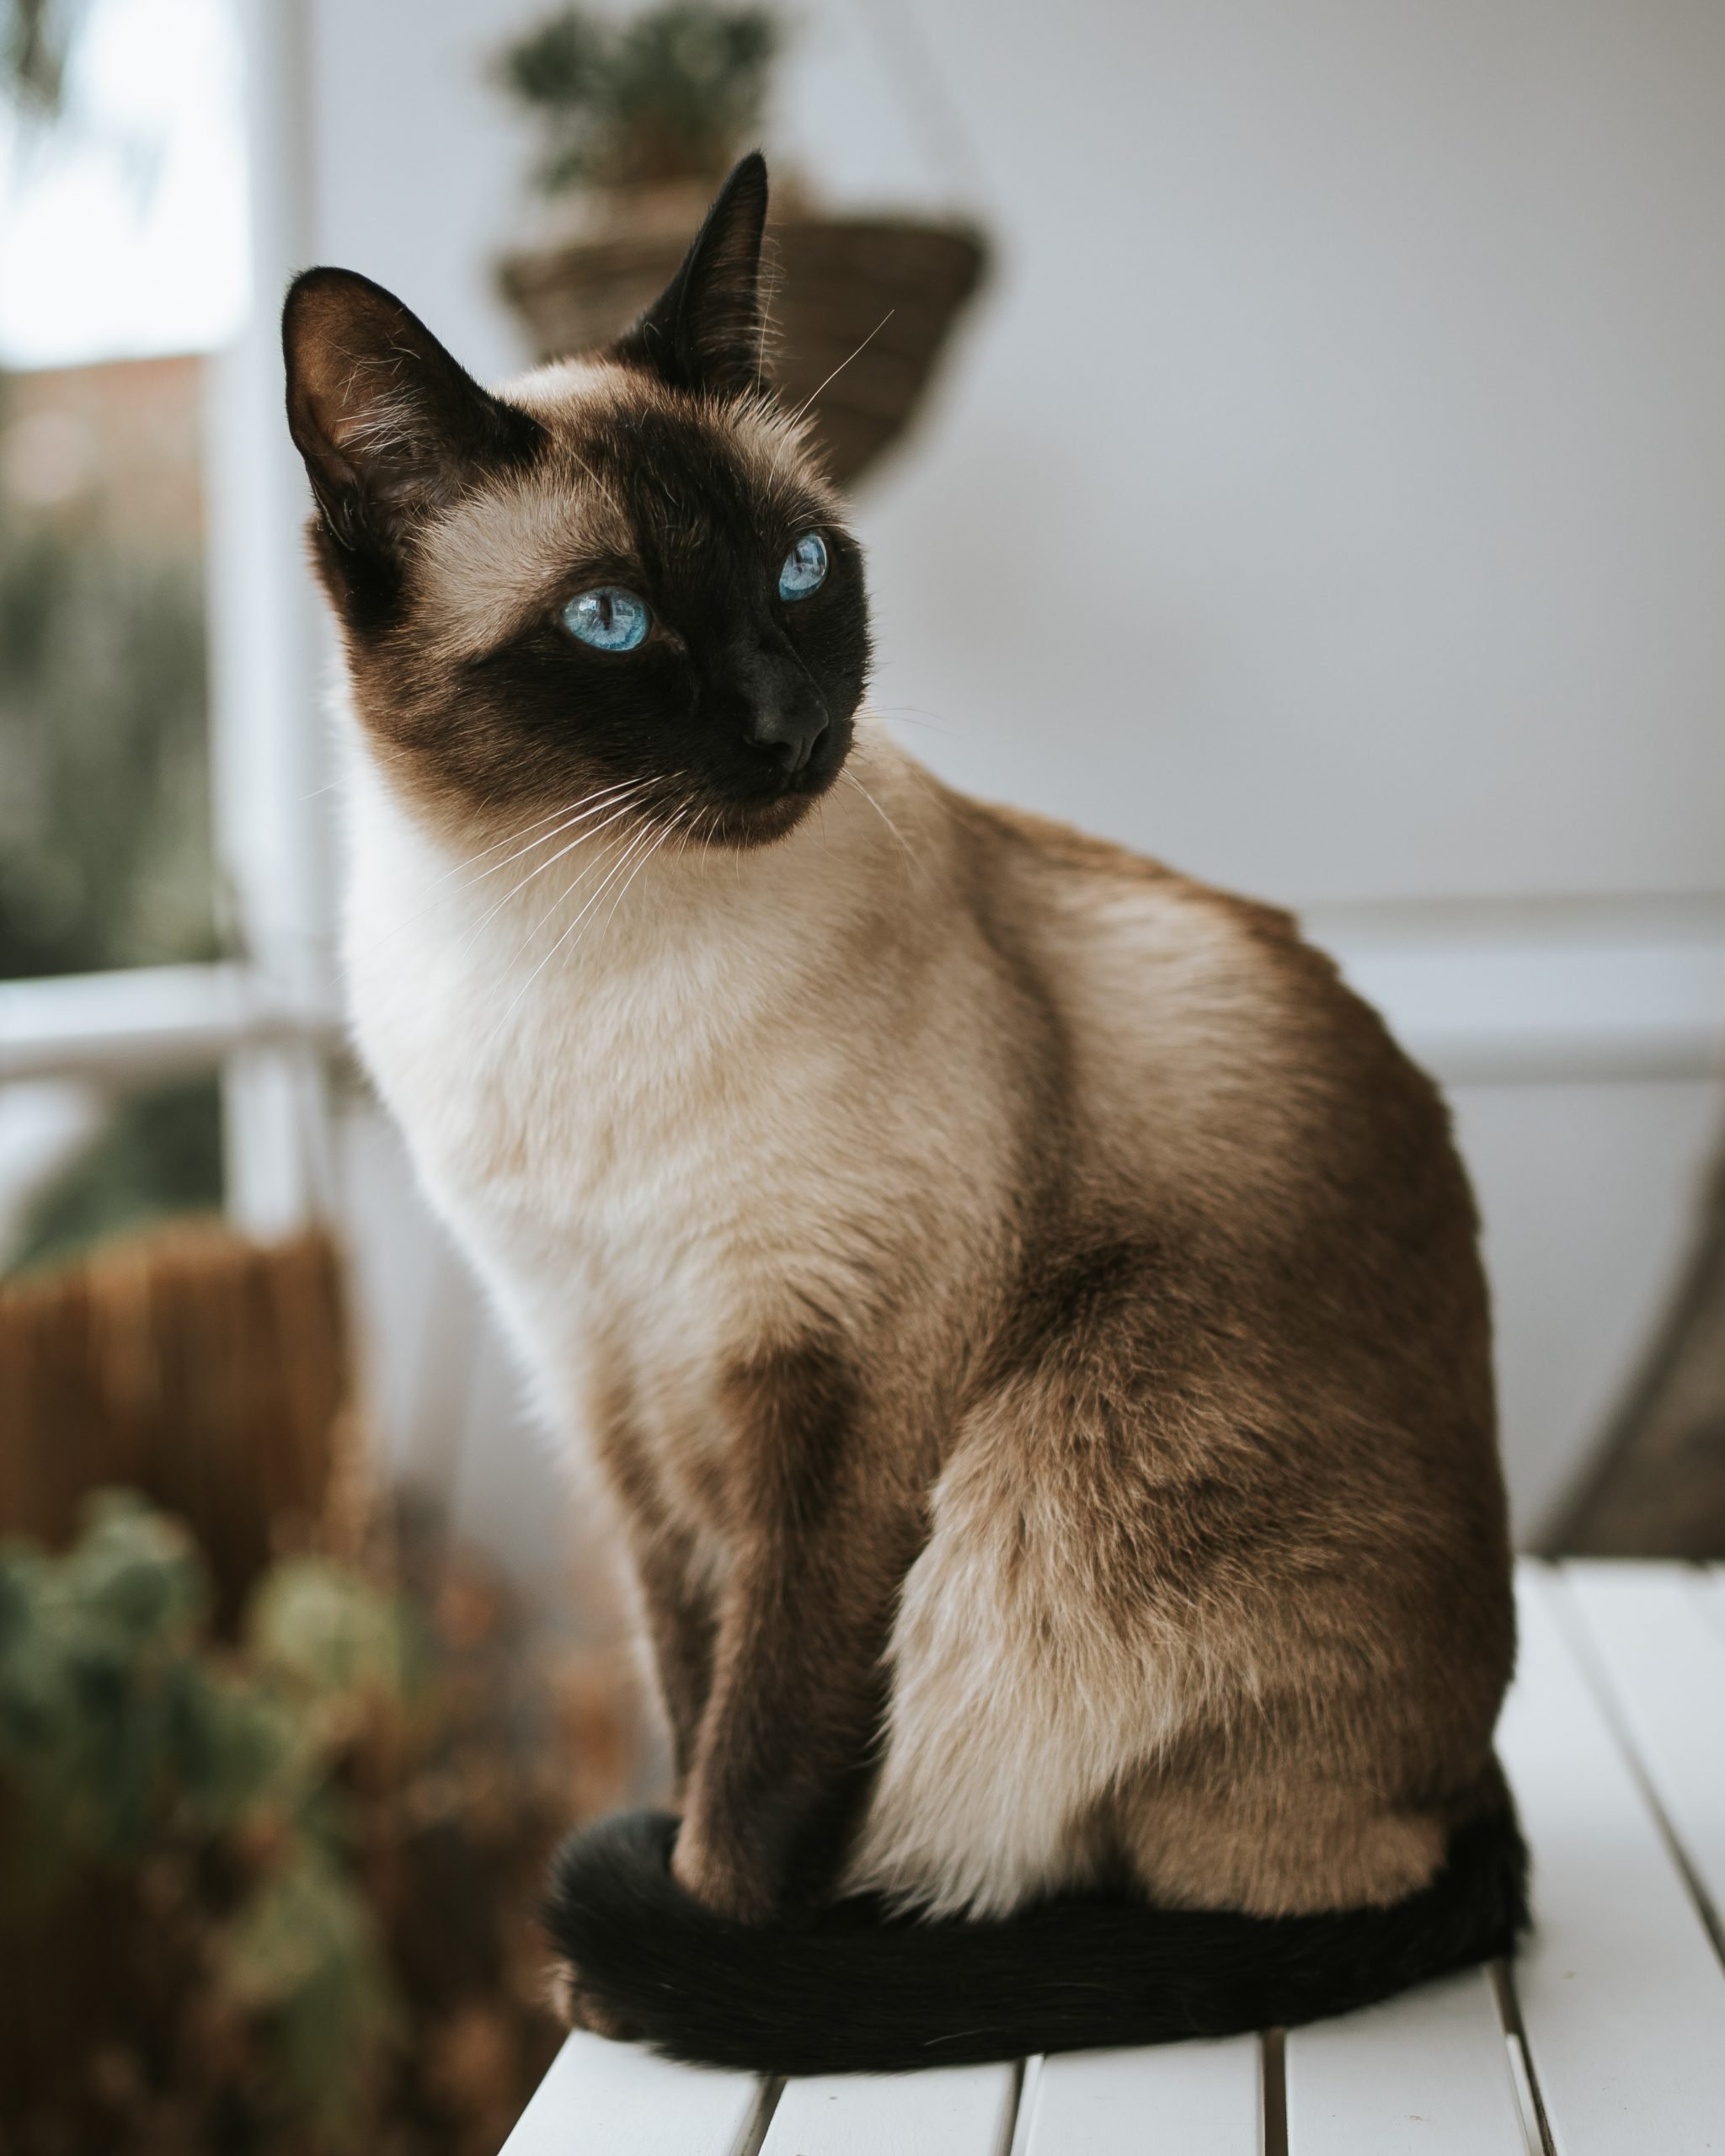 Beautiful siamese thai cat with blue eyes relaxing